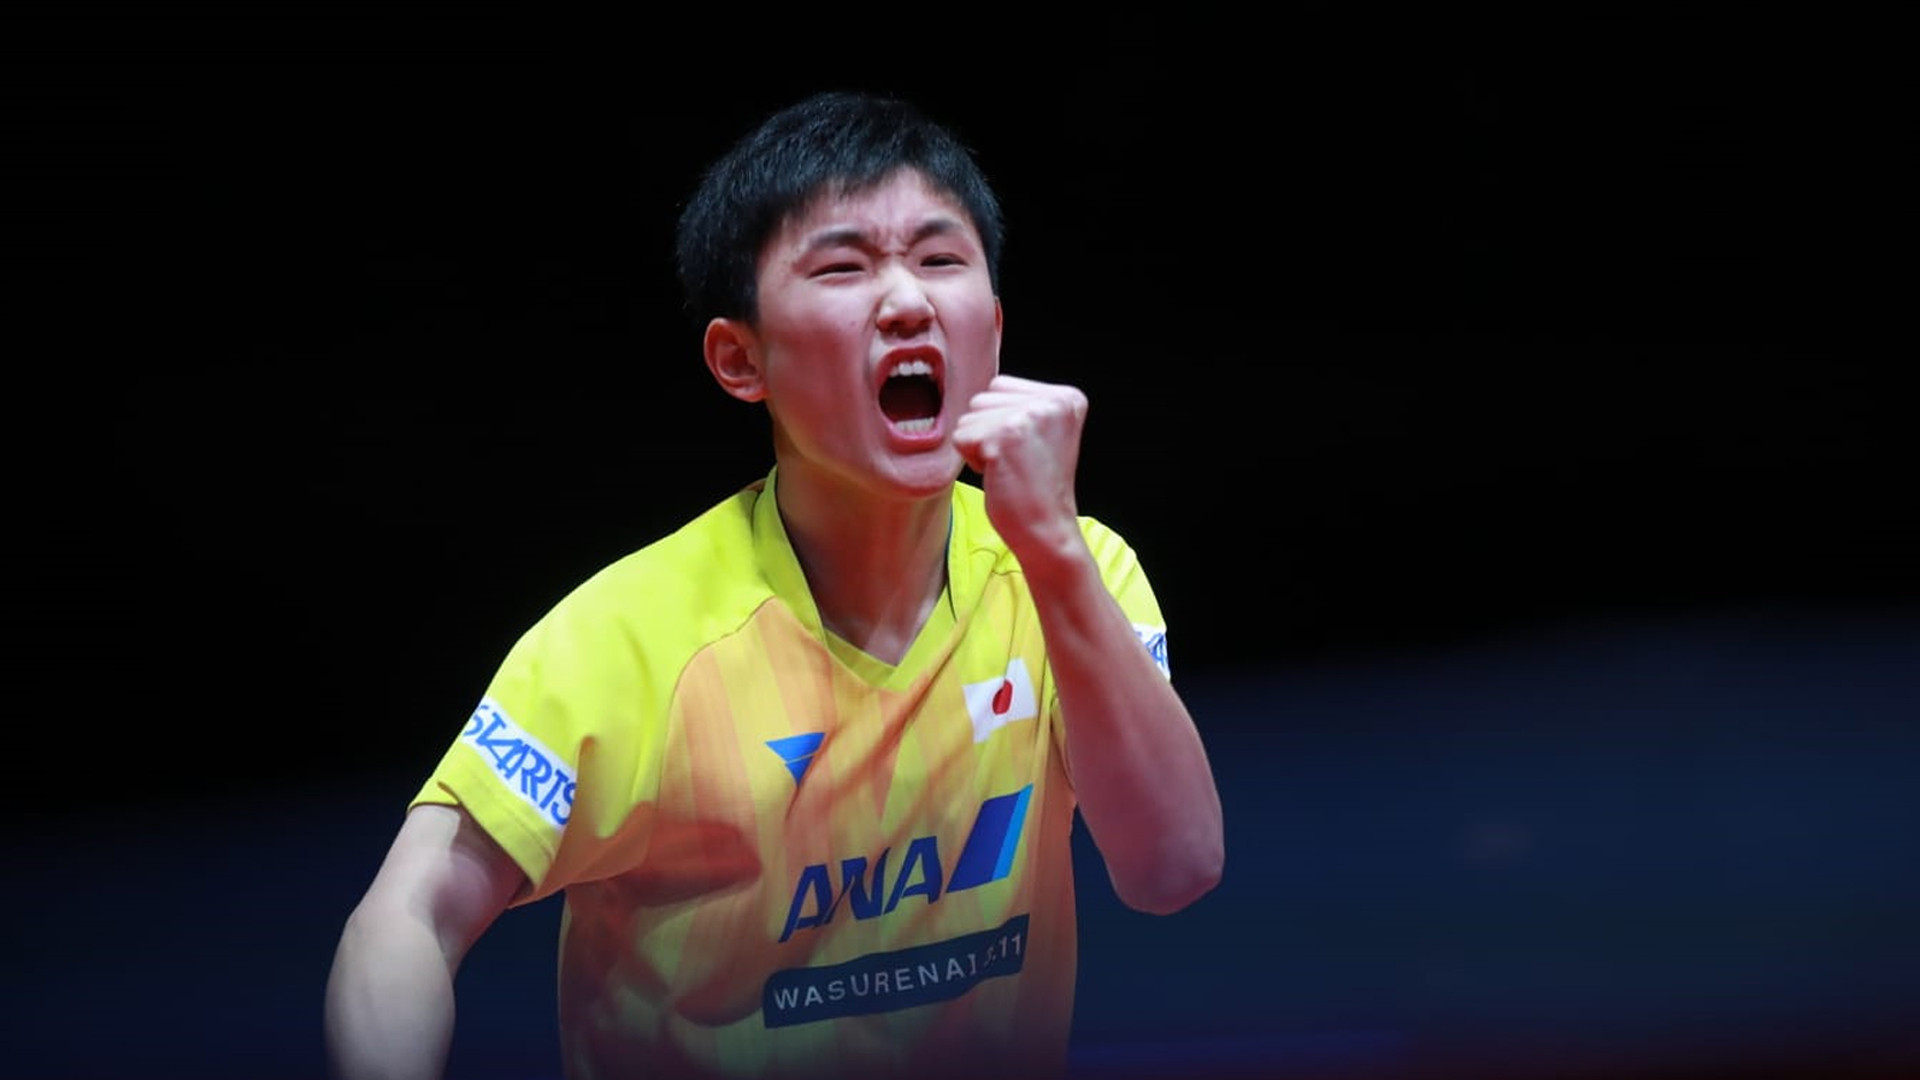 Historic Harimoto wins ITTF World Tour Grand Finals men's gold for Japan at age of 15